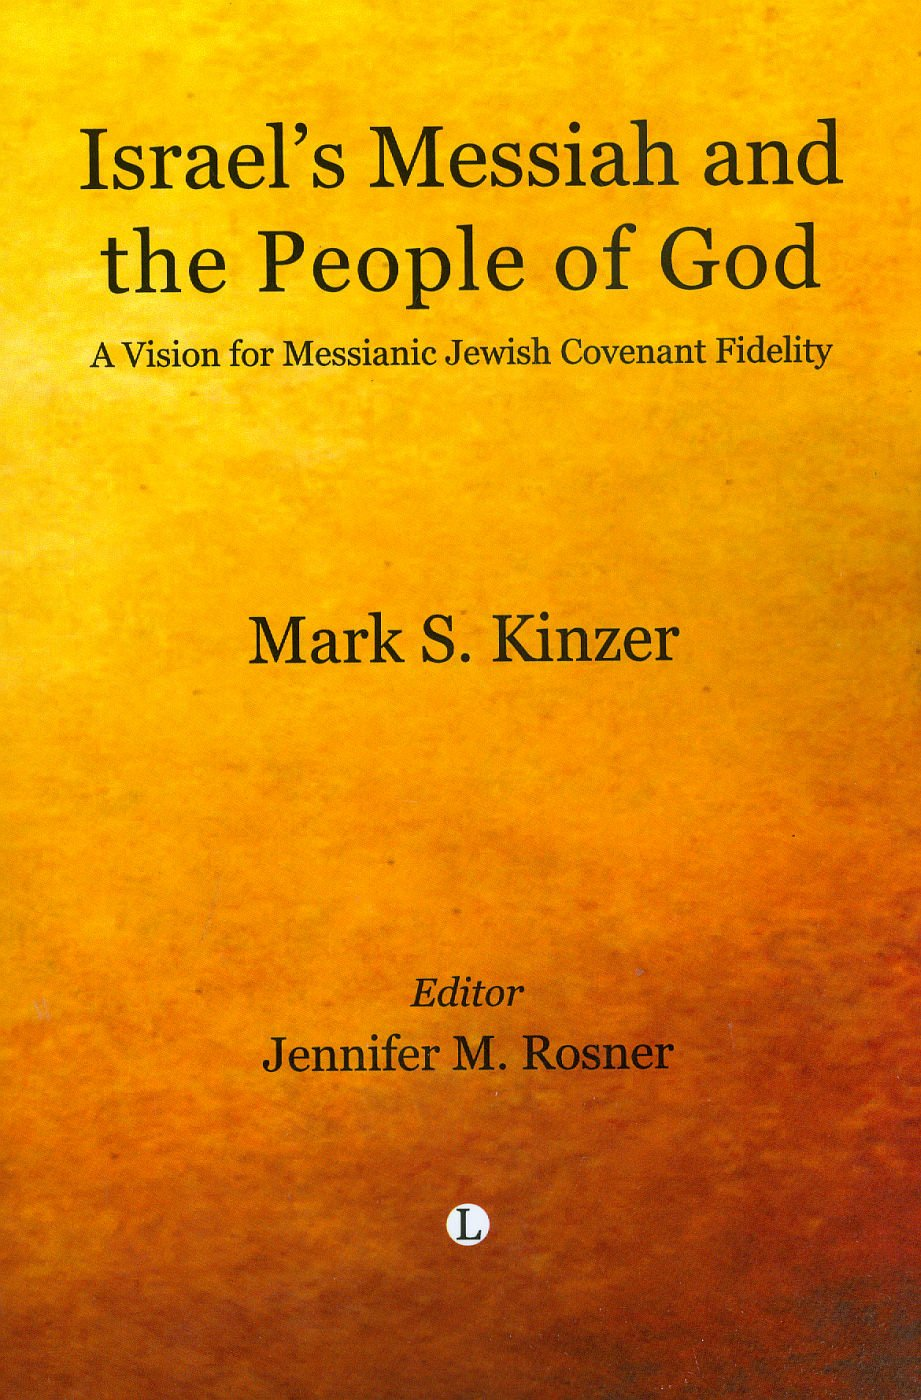 Israel's Messiah and the People of God: A Vision for Messianic Jewish Covenant Fidelity by Lutterworth Press